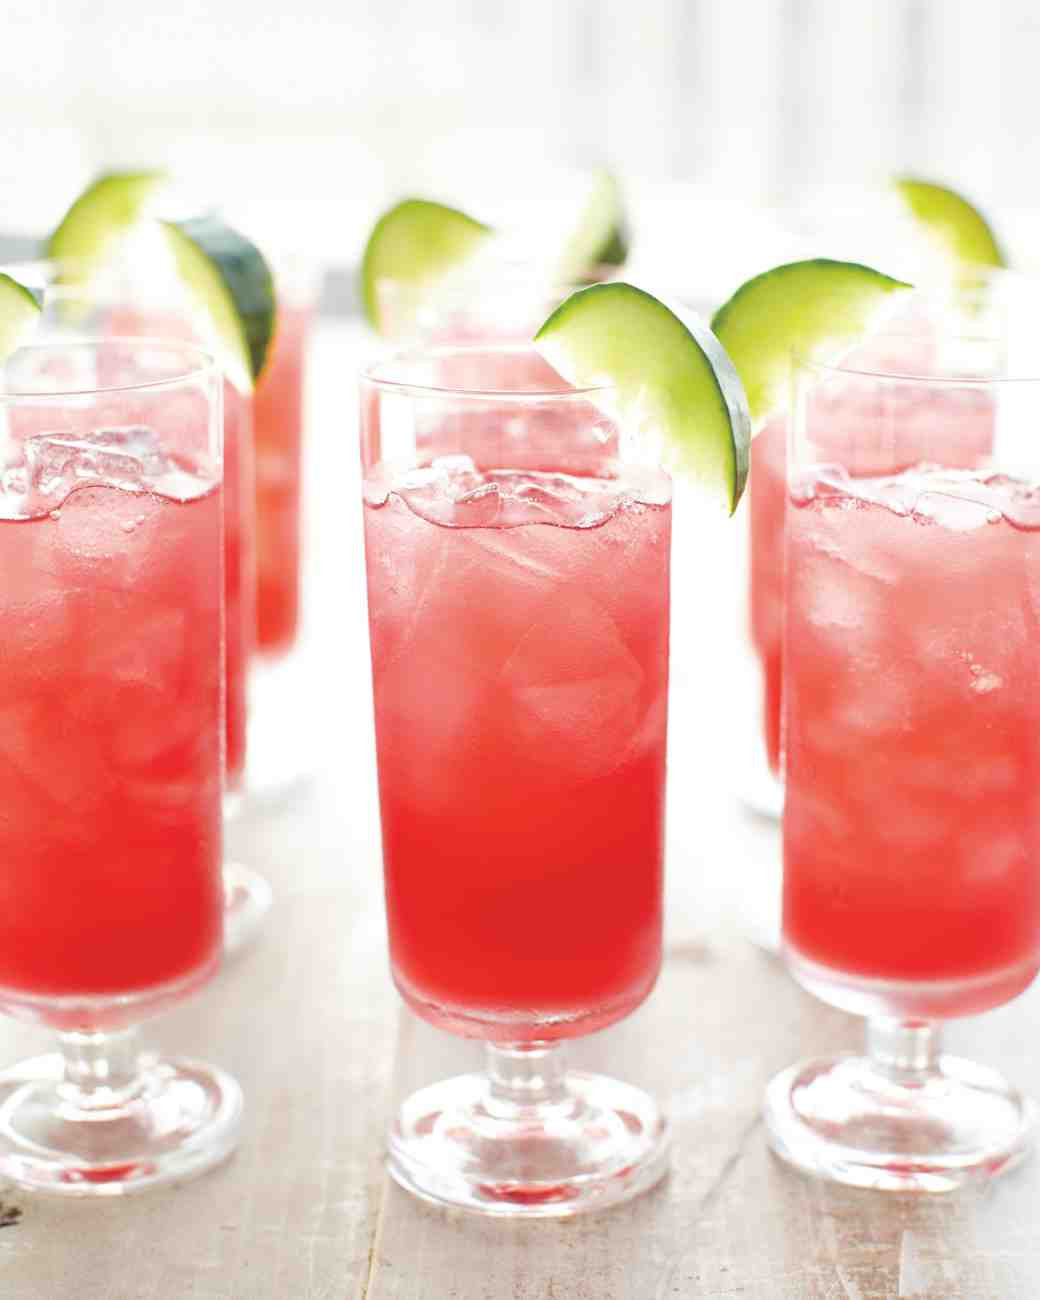 Mixed Drinks With Vodka  Vodka Cocktail Recipes for all Seasons